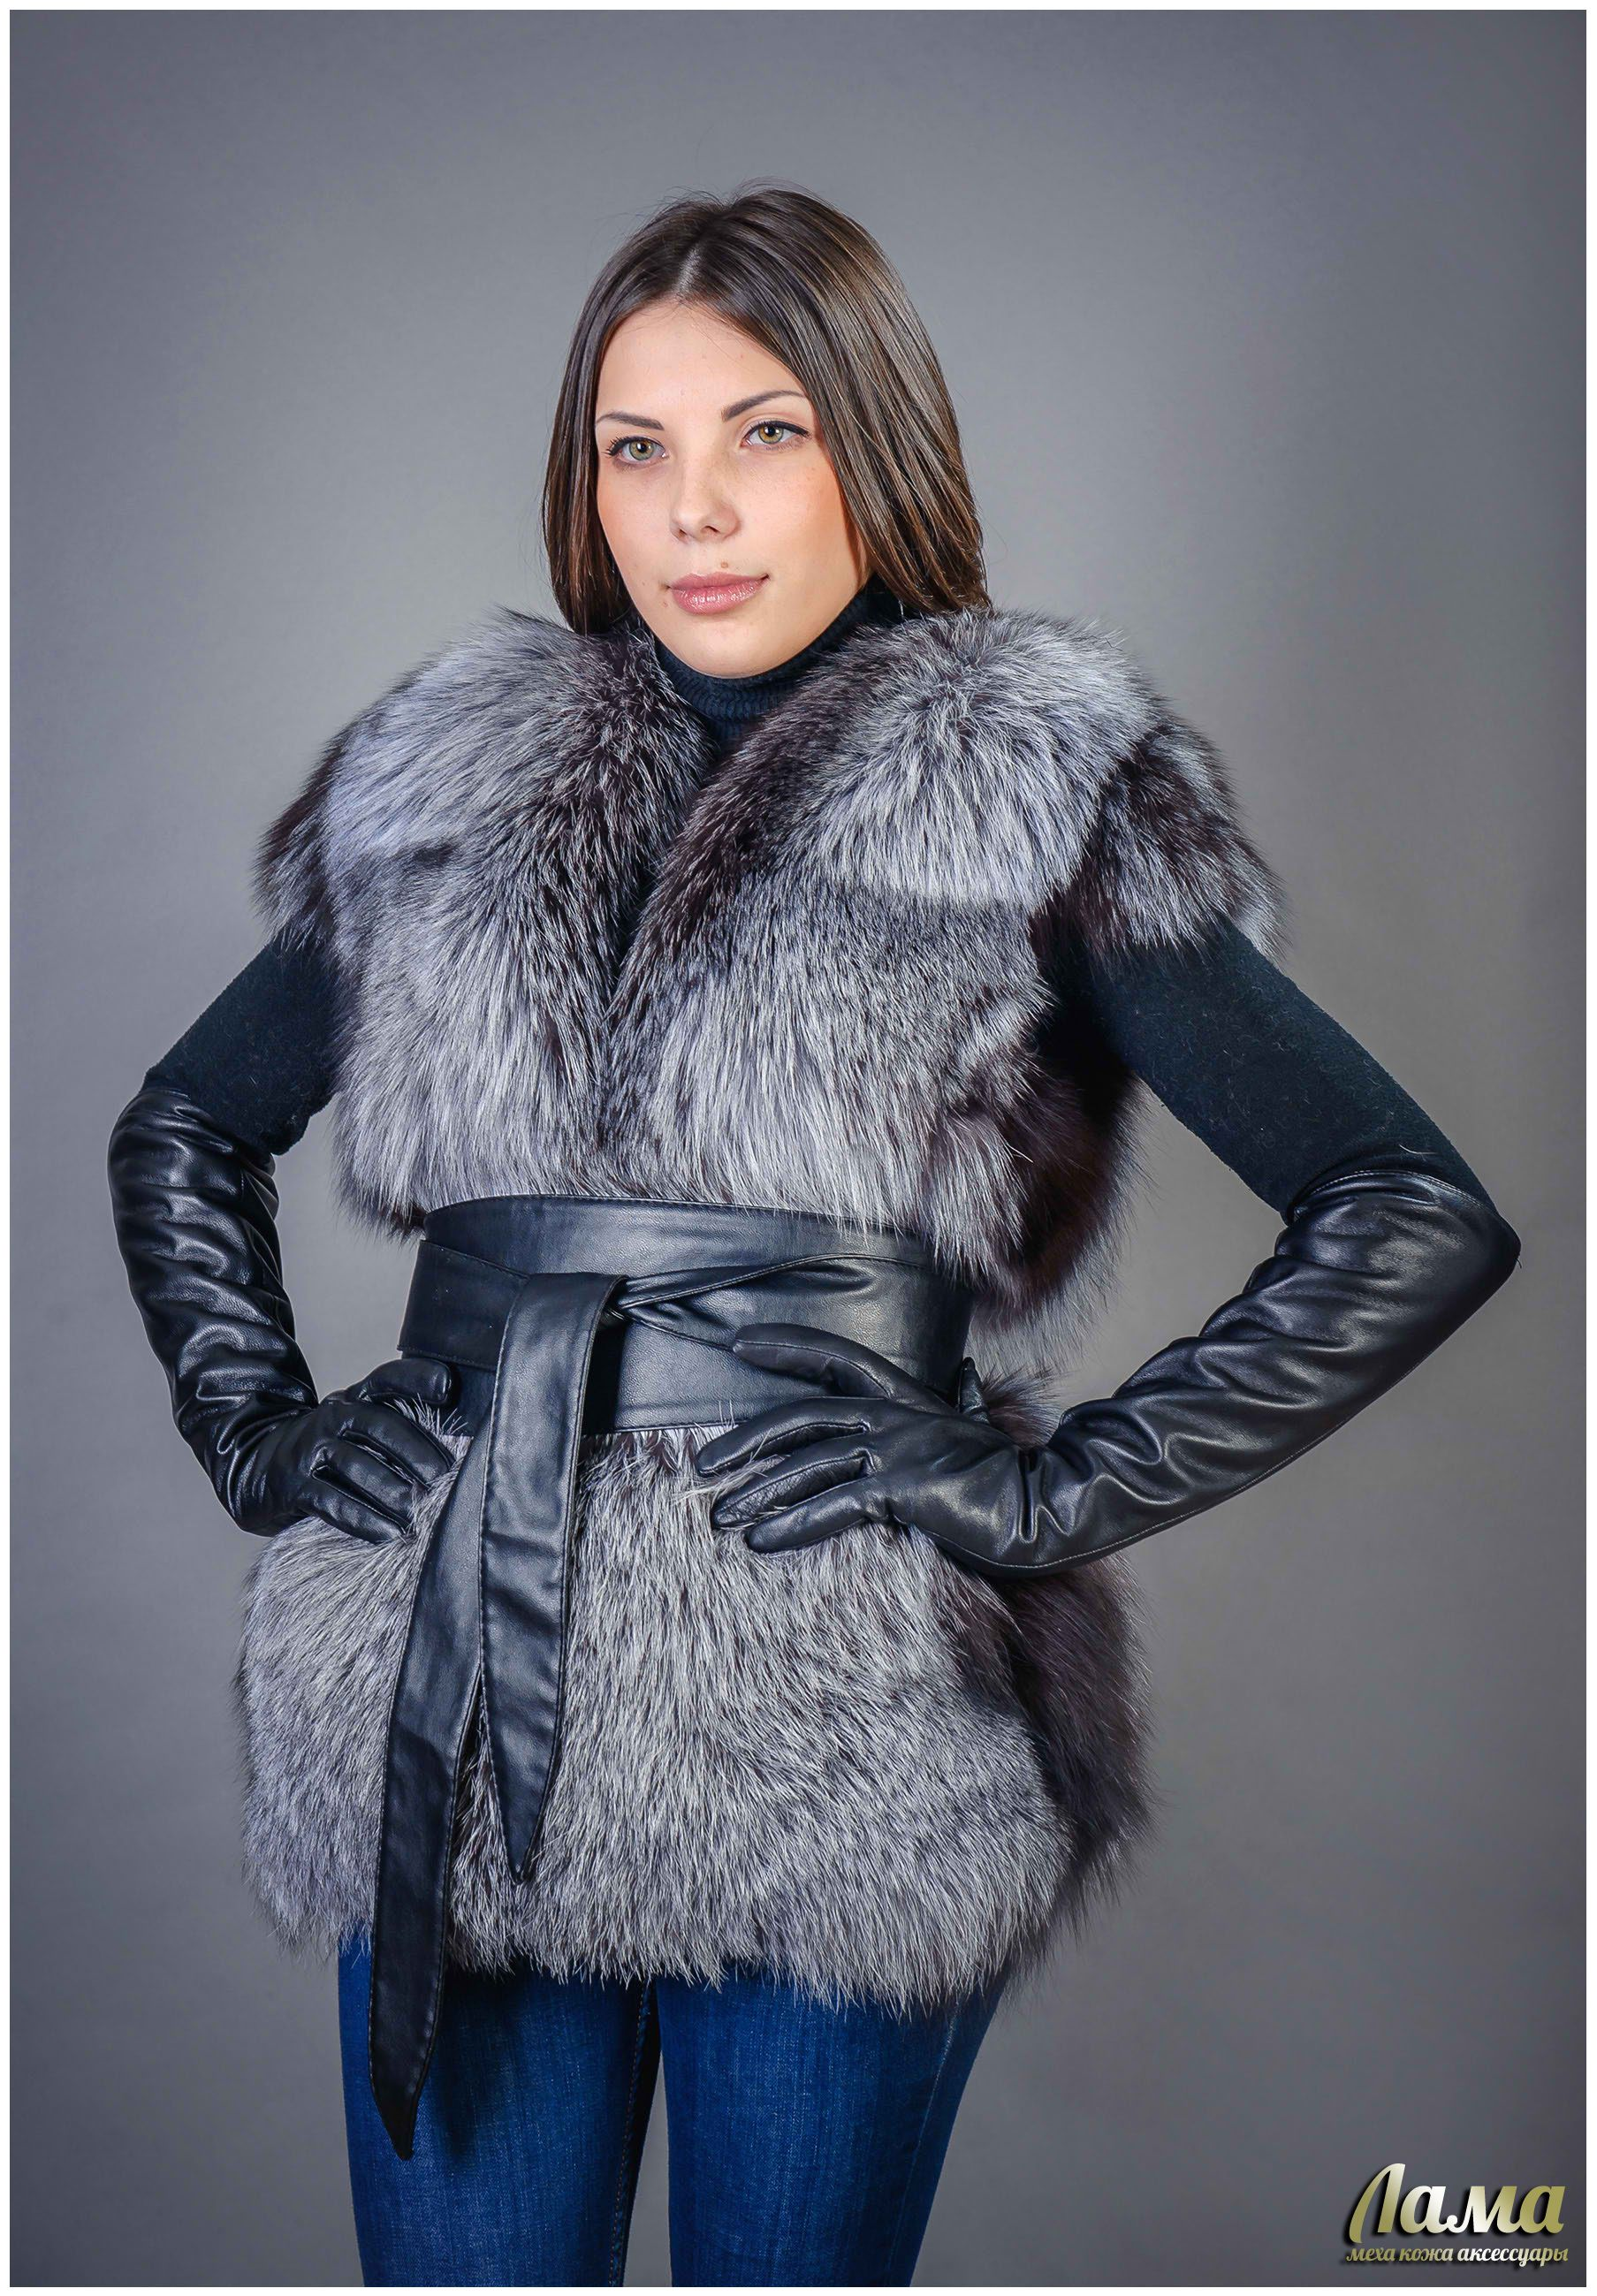 Nice fur vest cinched with a wide leather obistyle belt